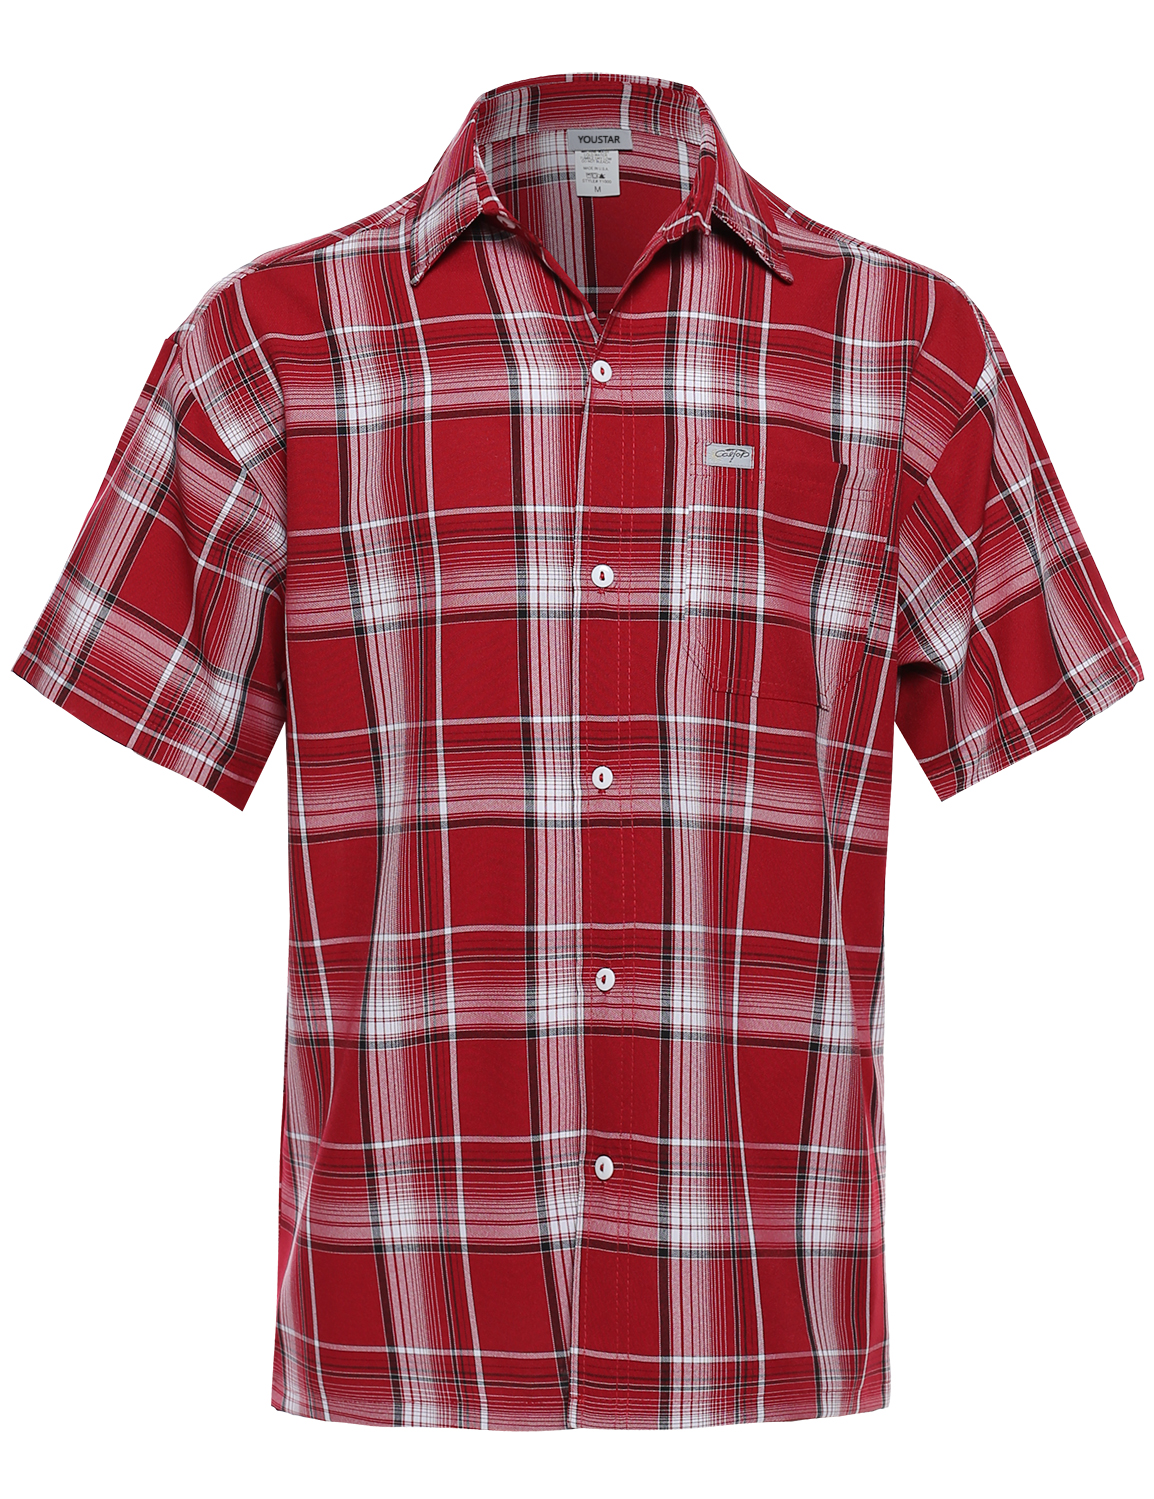 Fashionoutfit men 39 s loose fit plaid checkered short sleeve for Short sleeve button up shirts